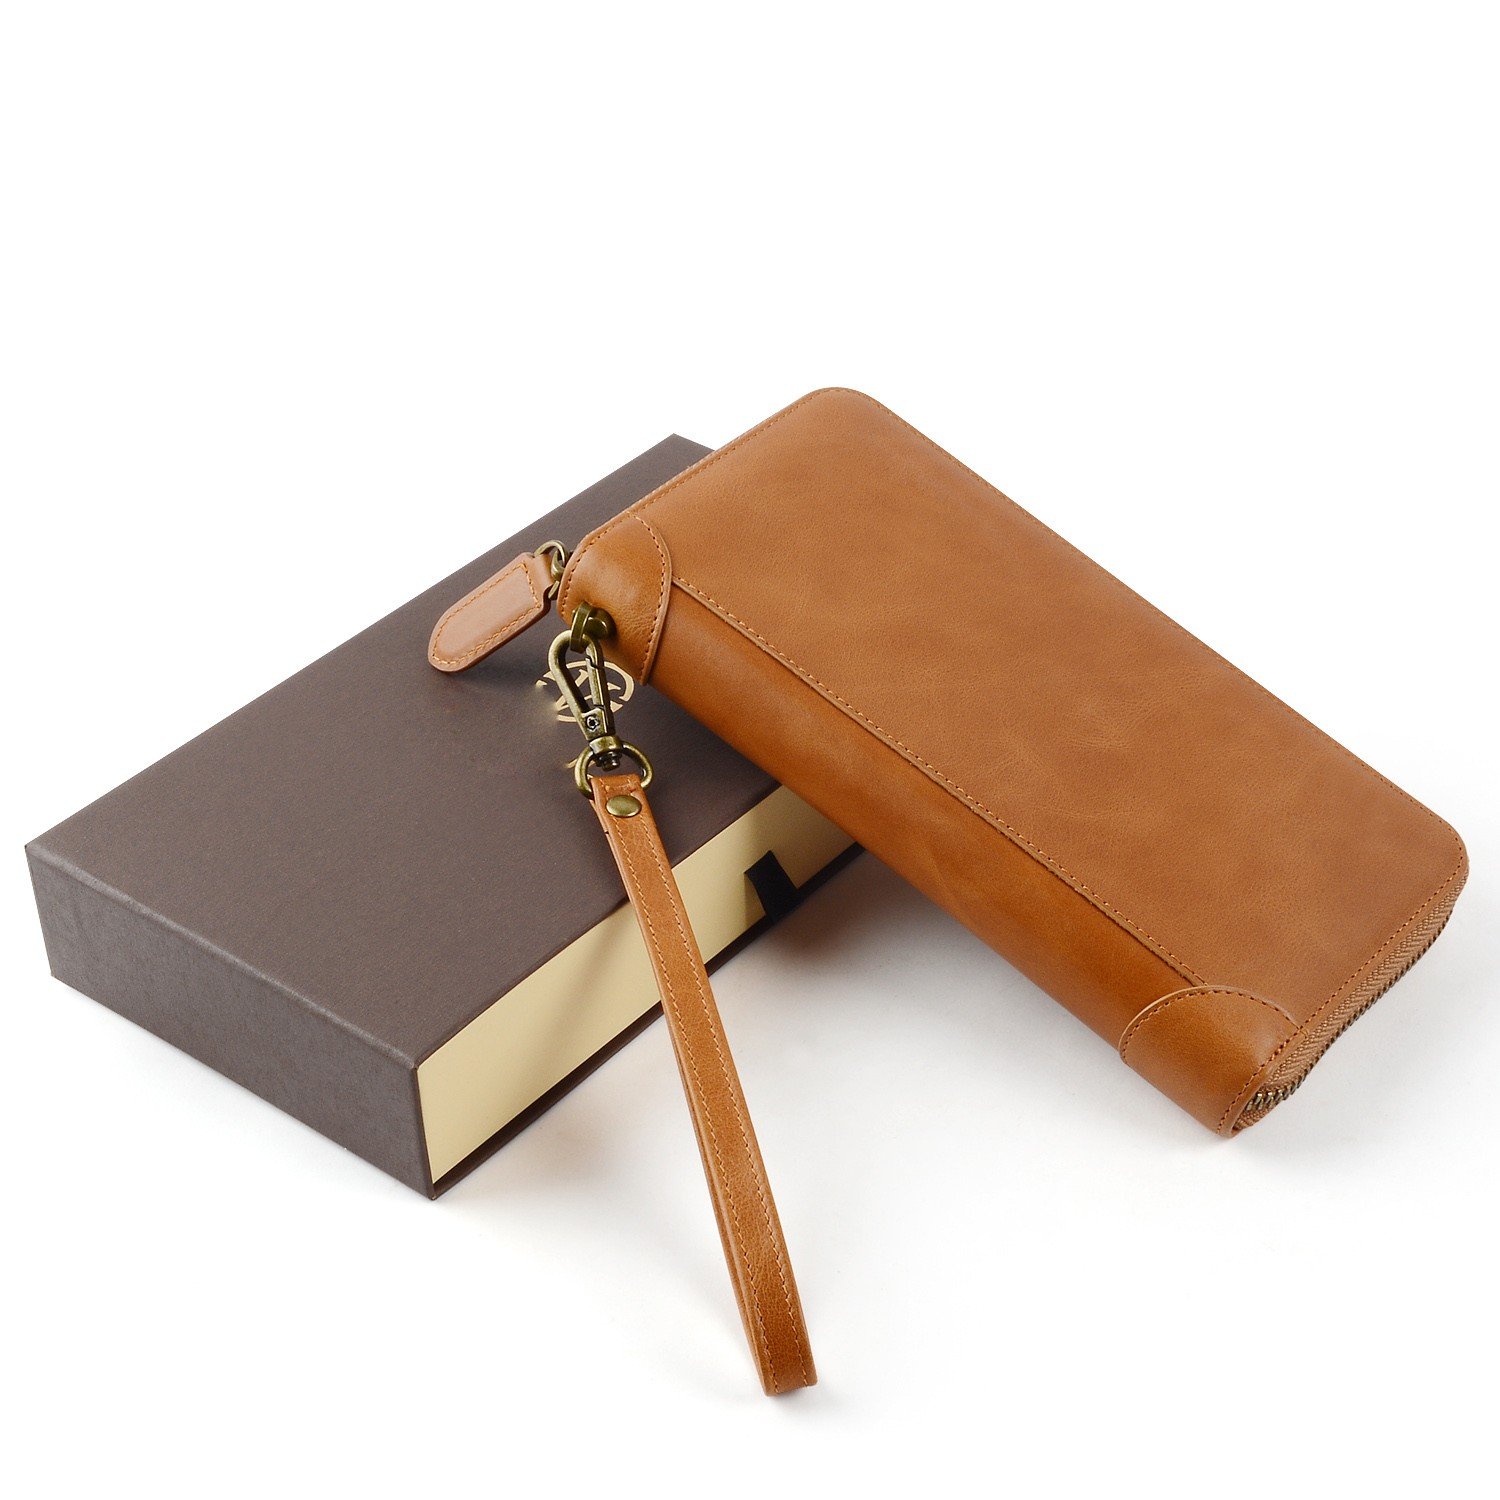 AIVI soft leather card holder wallet mens supply for phone XS Max-8